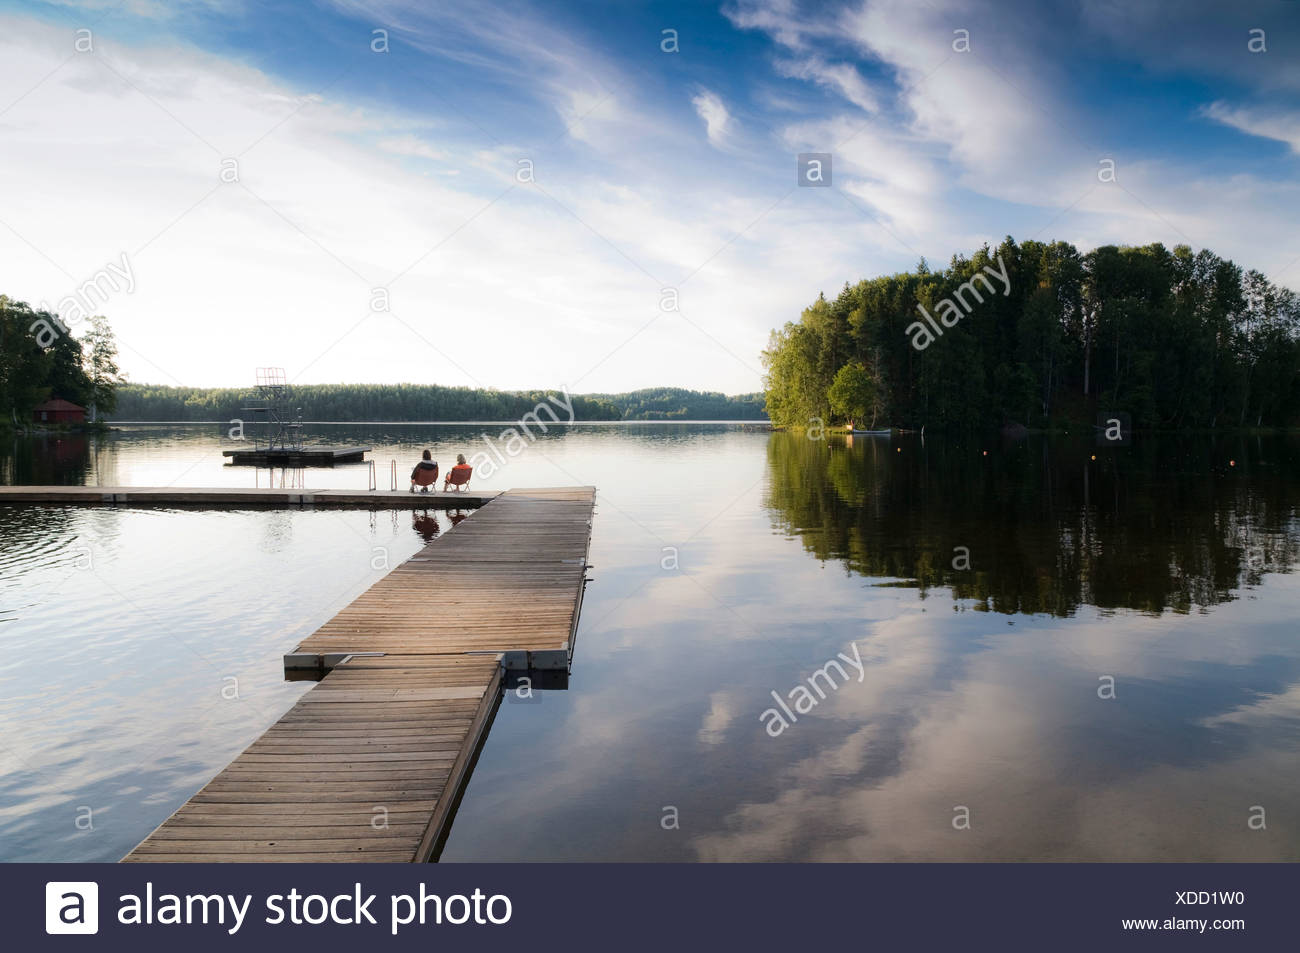 Lake in the southwest of Sweden, Scandinavia, Europe - Stock Image